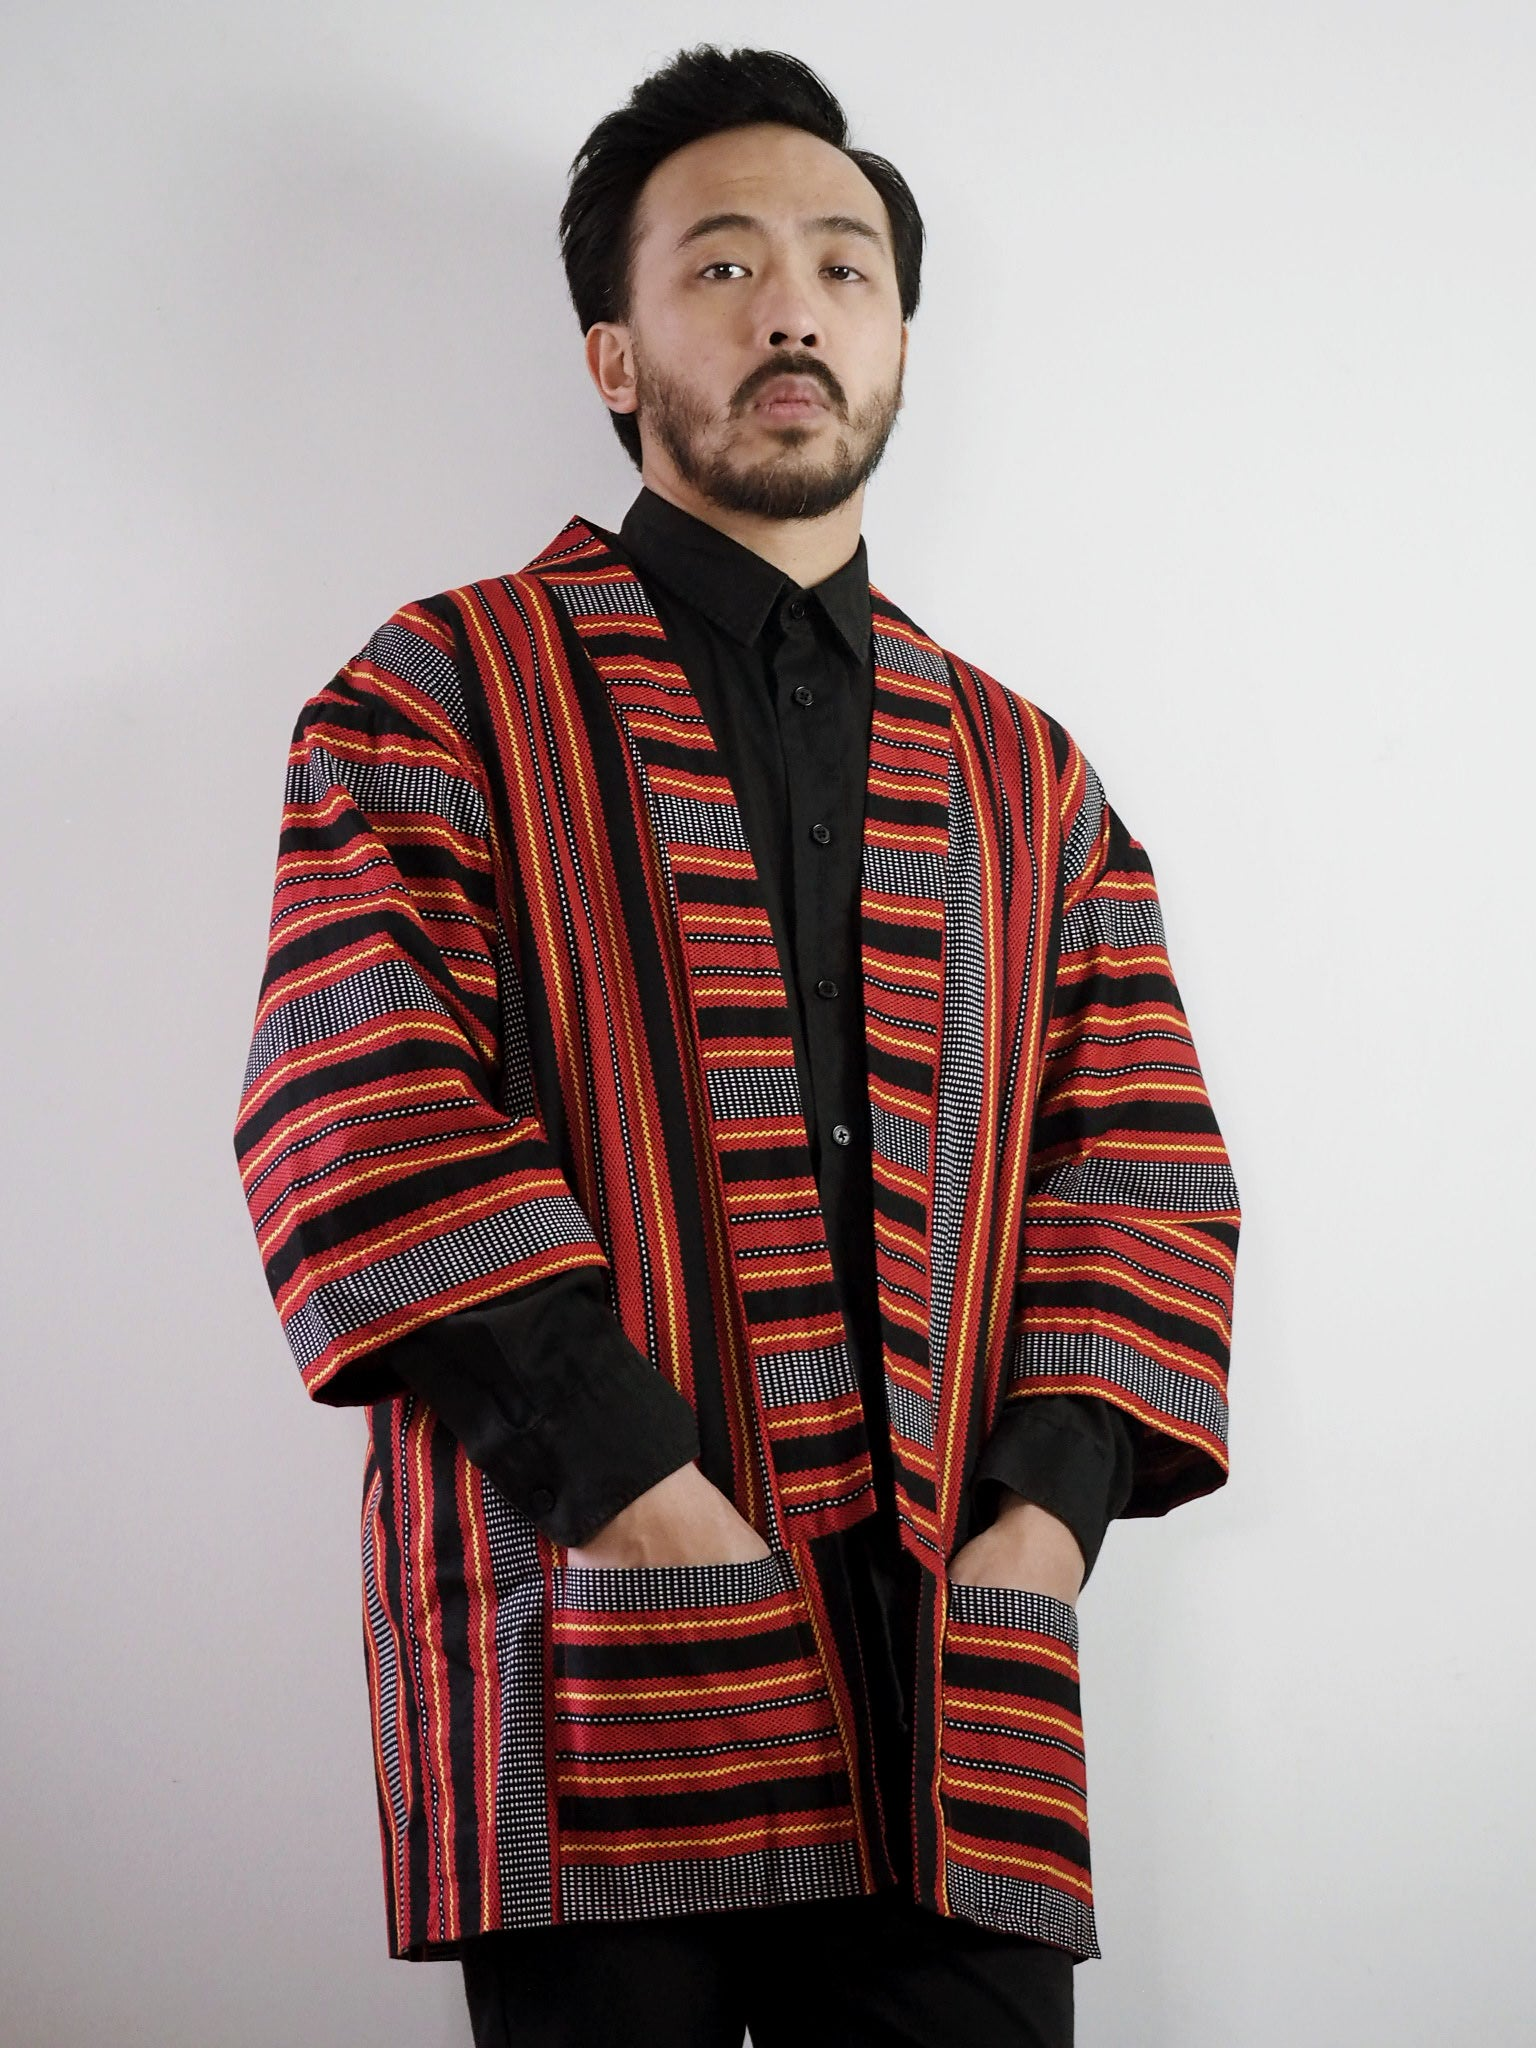 VINTA Unisex Printed Ifugao Jacket on Darrel